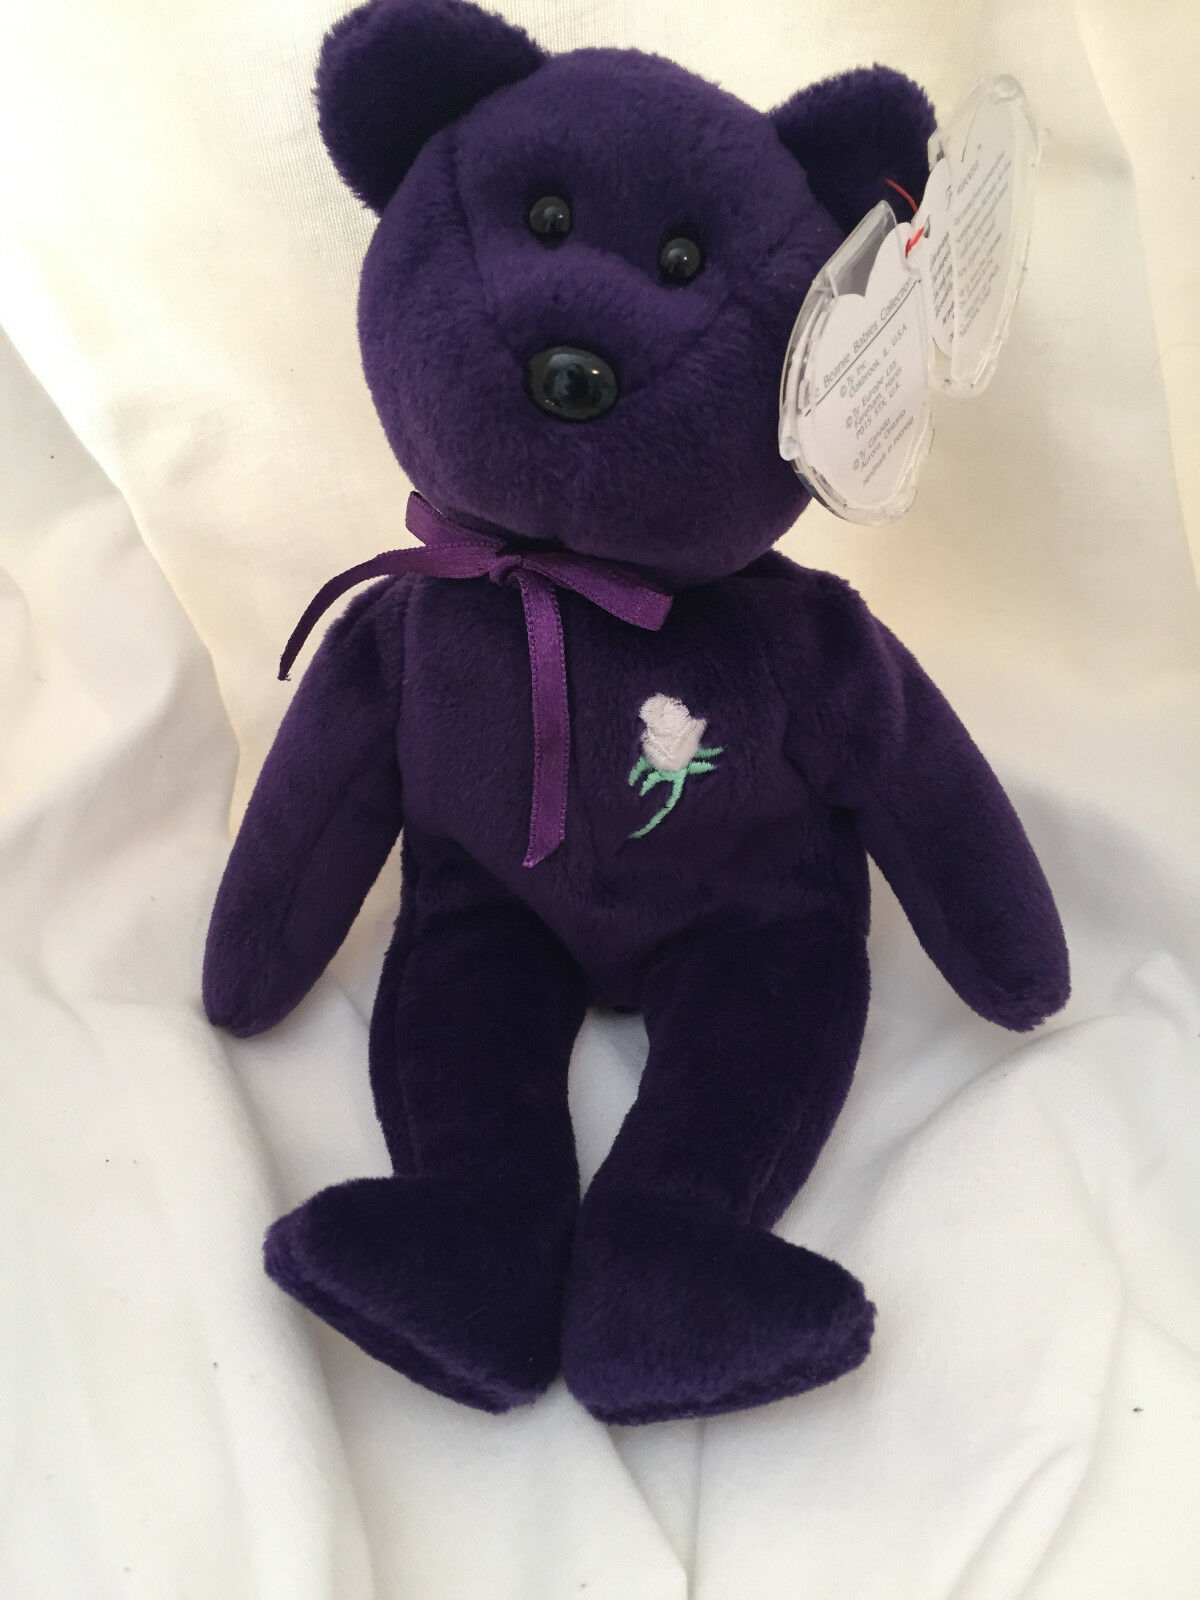 PRINCESS DIANA 1st Edition Beanie Baby (Ghost Version) PVC, MUST READ